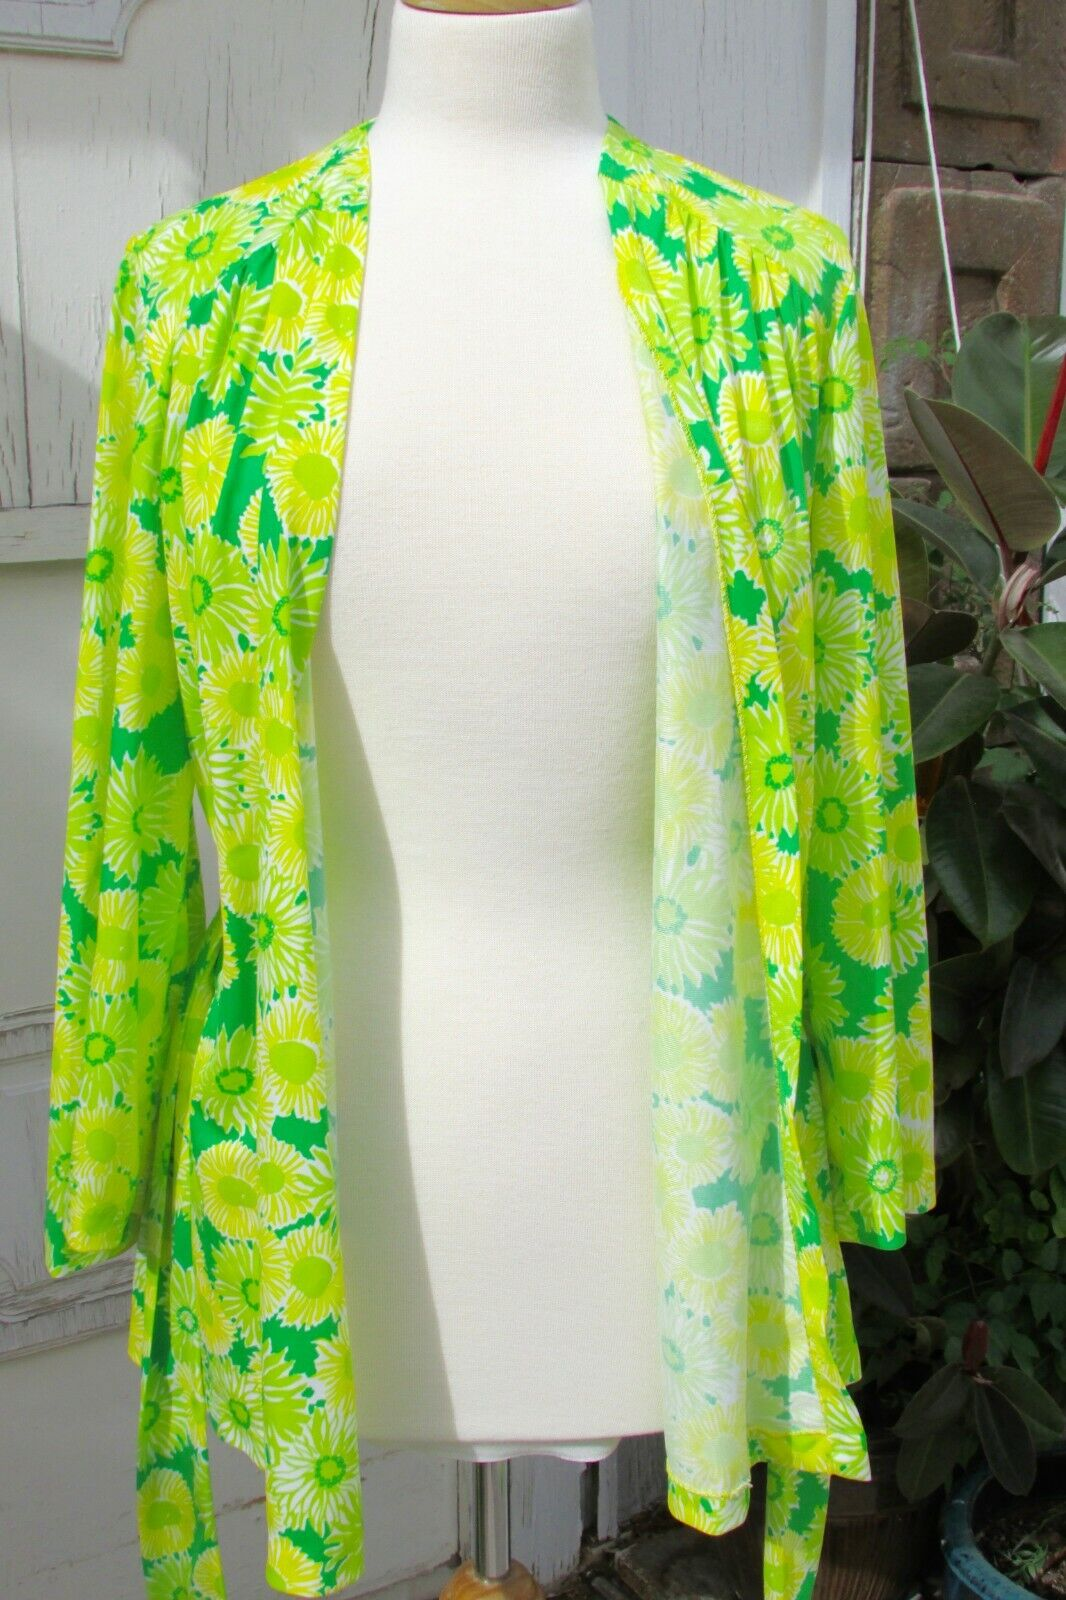 GREEN NEON VTG 70's Swimwear Cover Up-Perfection … - image 5